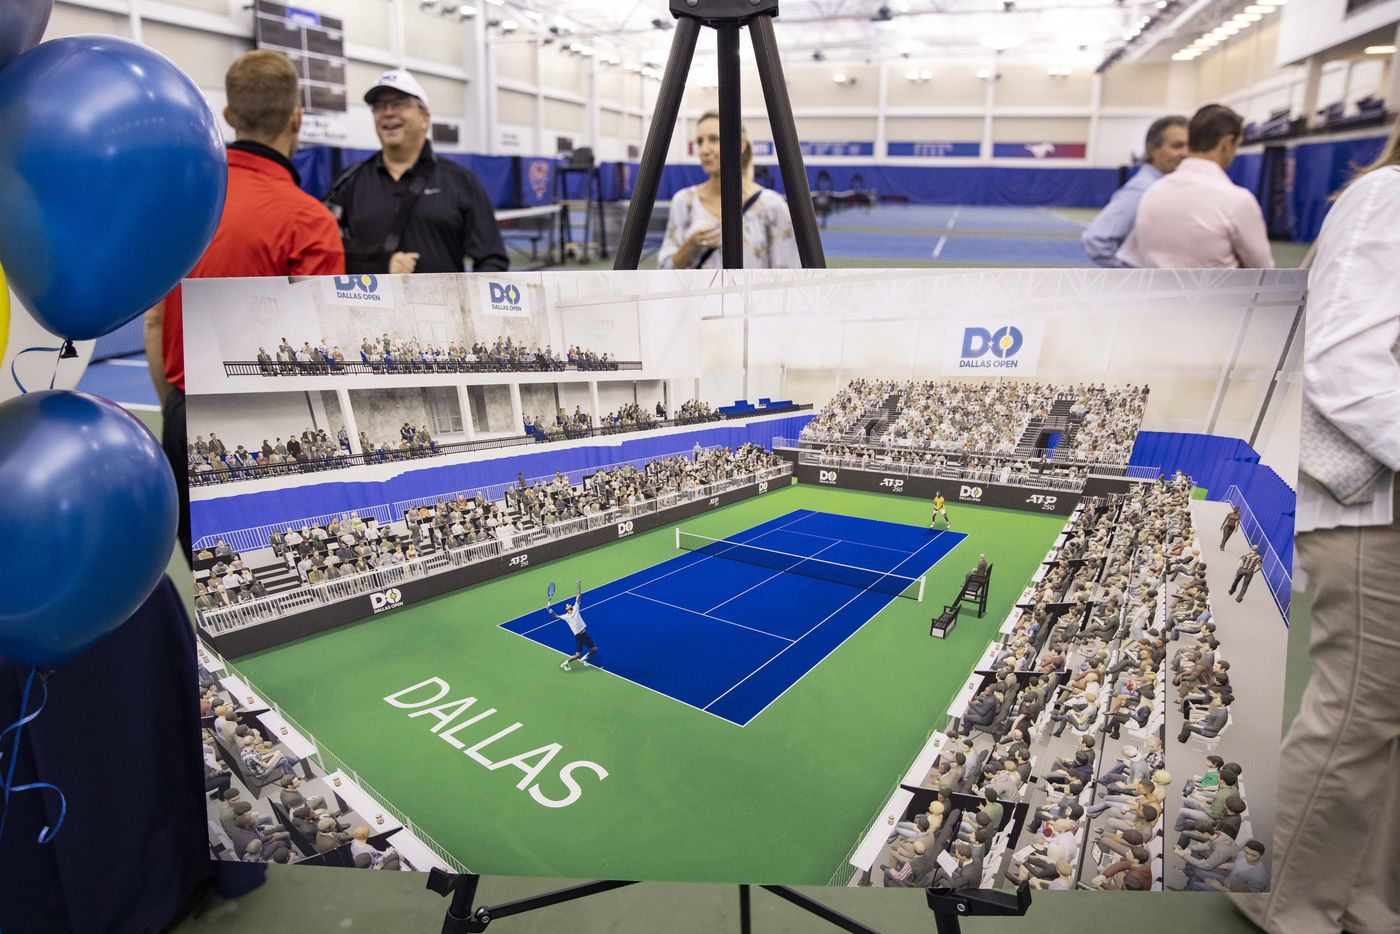 A rendering of the tennis court during a press conference to announce a new ATP tennis tour event coming to Dallas at the SMU Styslinger/Altec Tennis Complex on Wednesday, May 19, 2021, in Dallas. (Juan Figueroa/The Dallas Morning News)